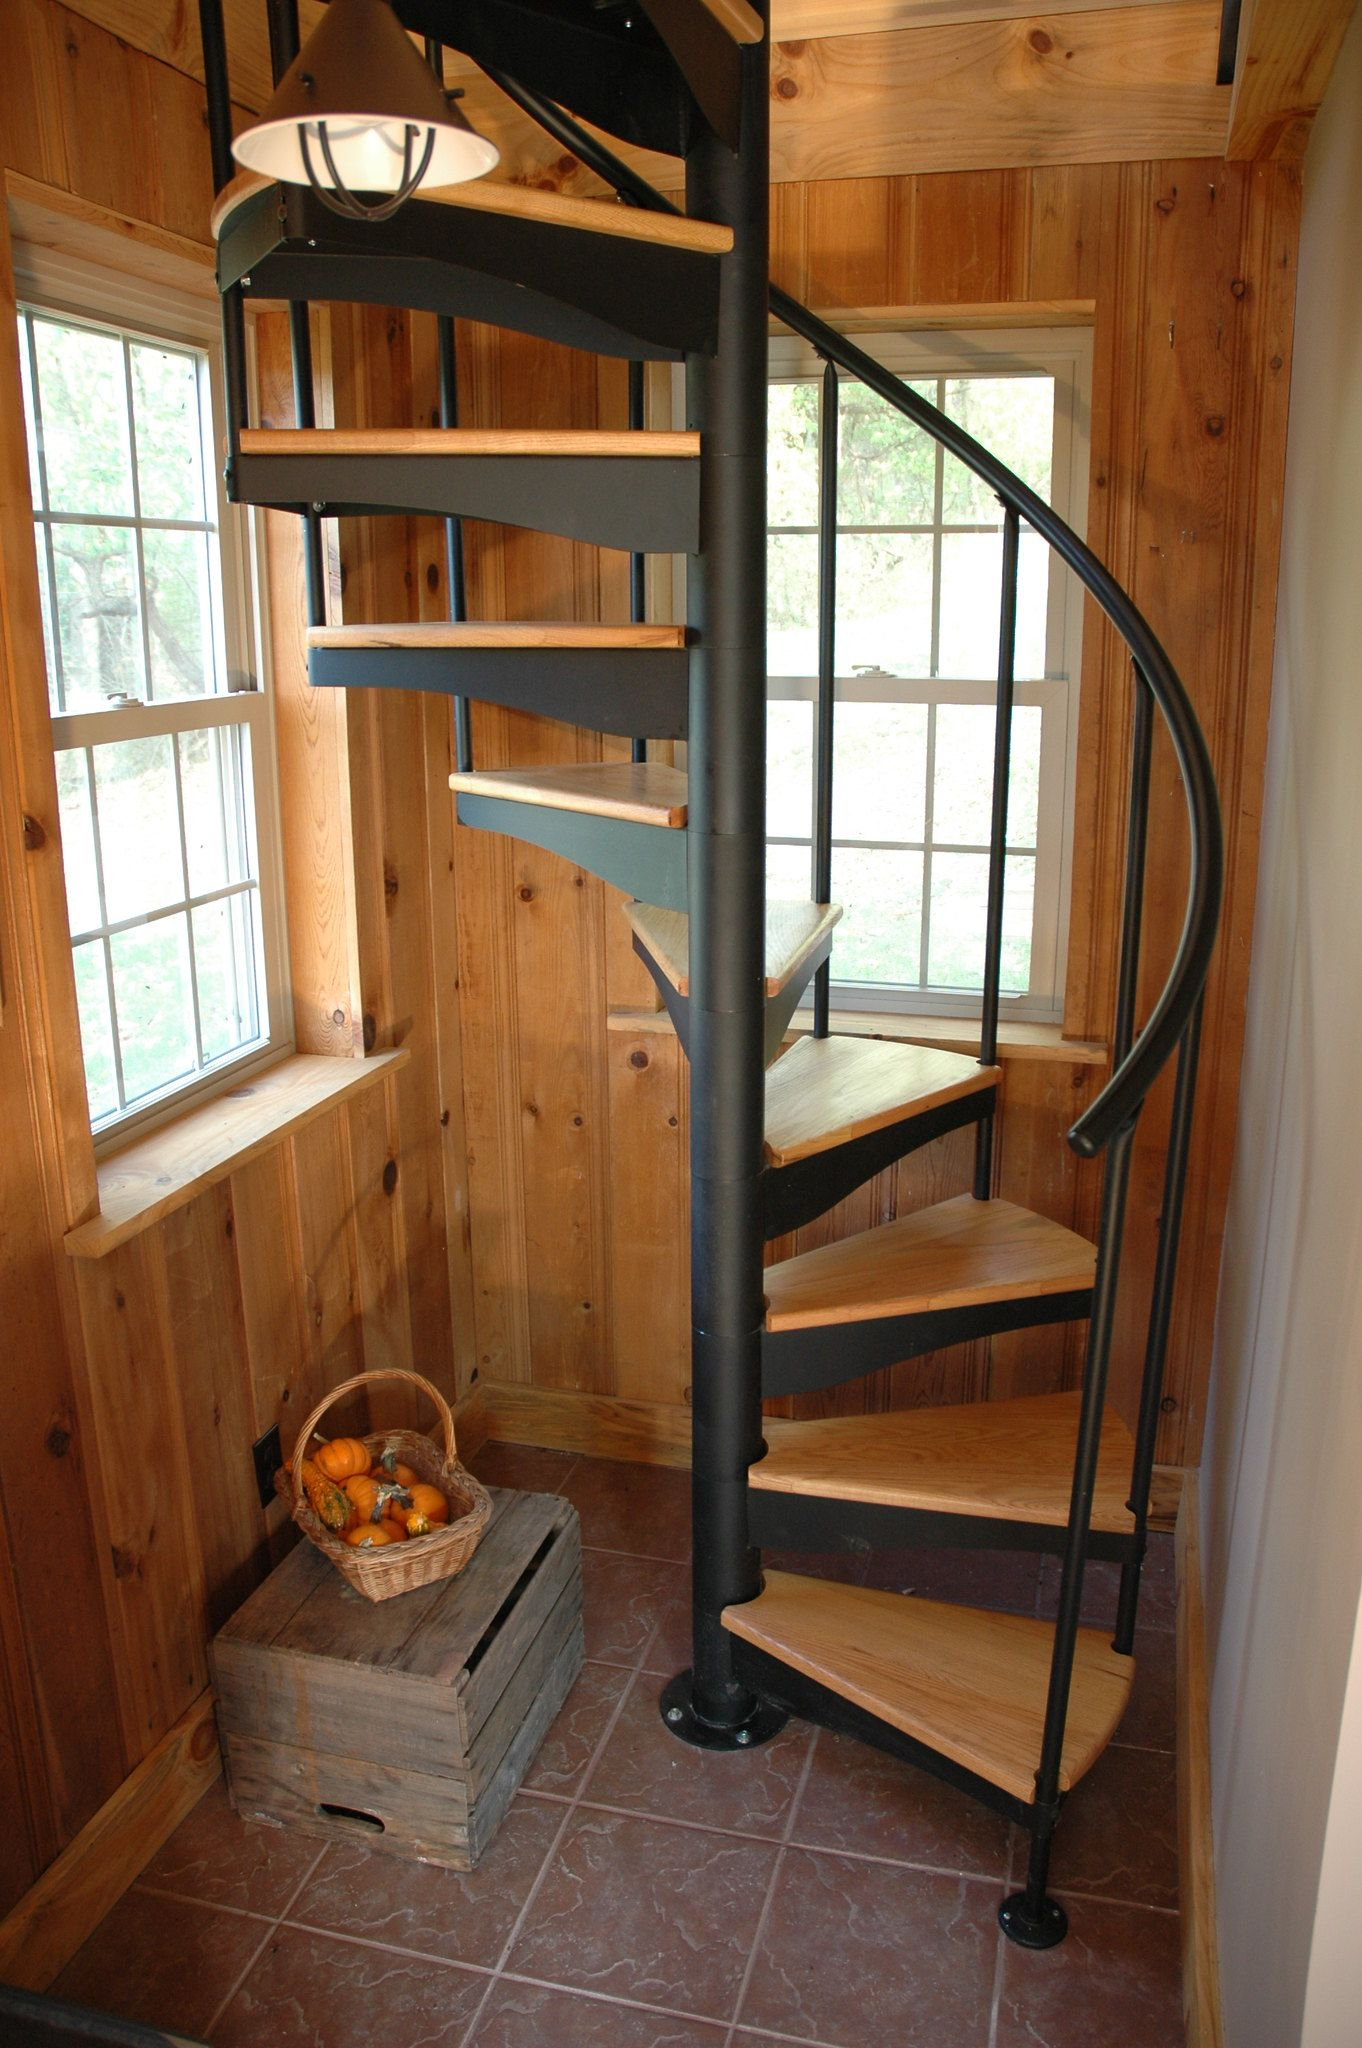 4 Standard Classic Steel Spiral Staircase In 2020 Spiral Stairs Design Tiny House Stairs Loft Staircase